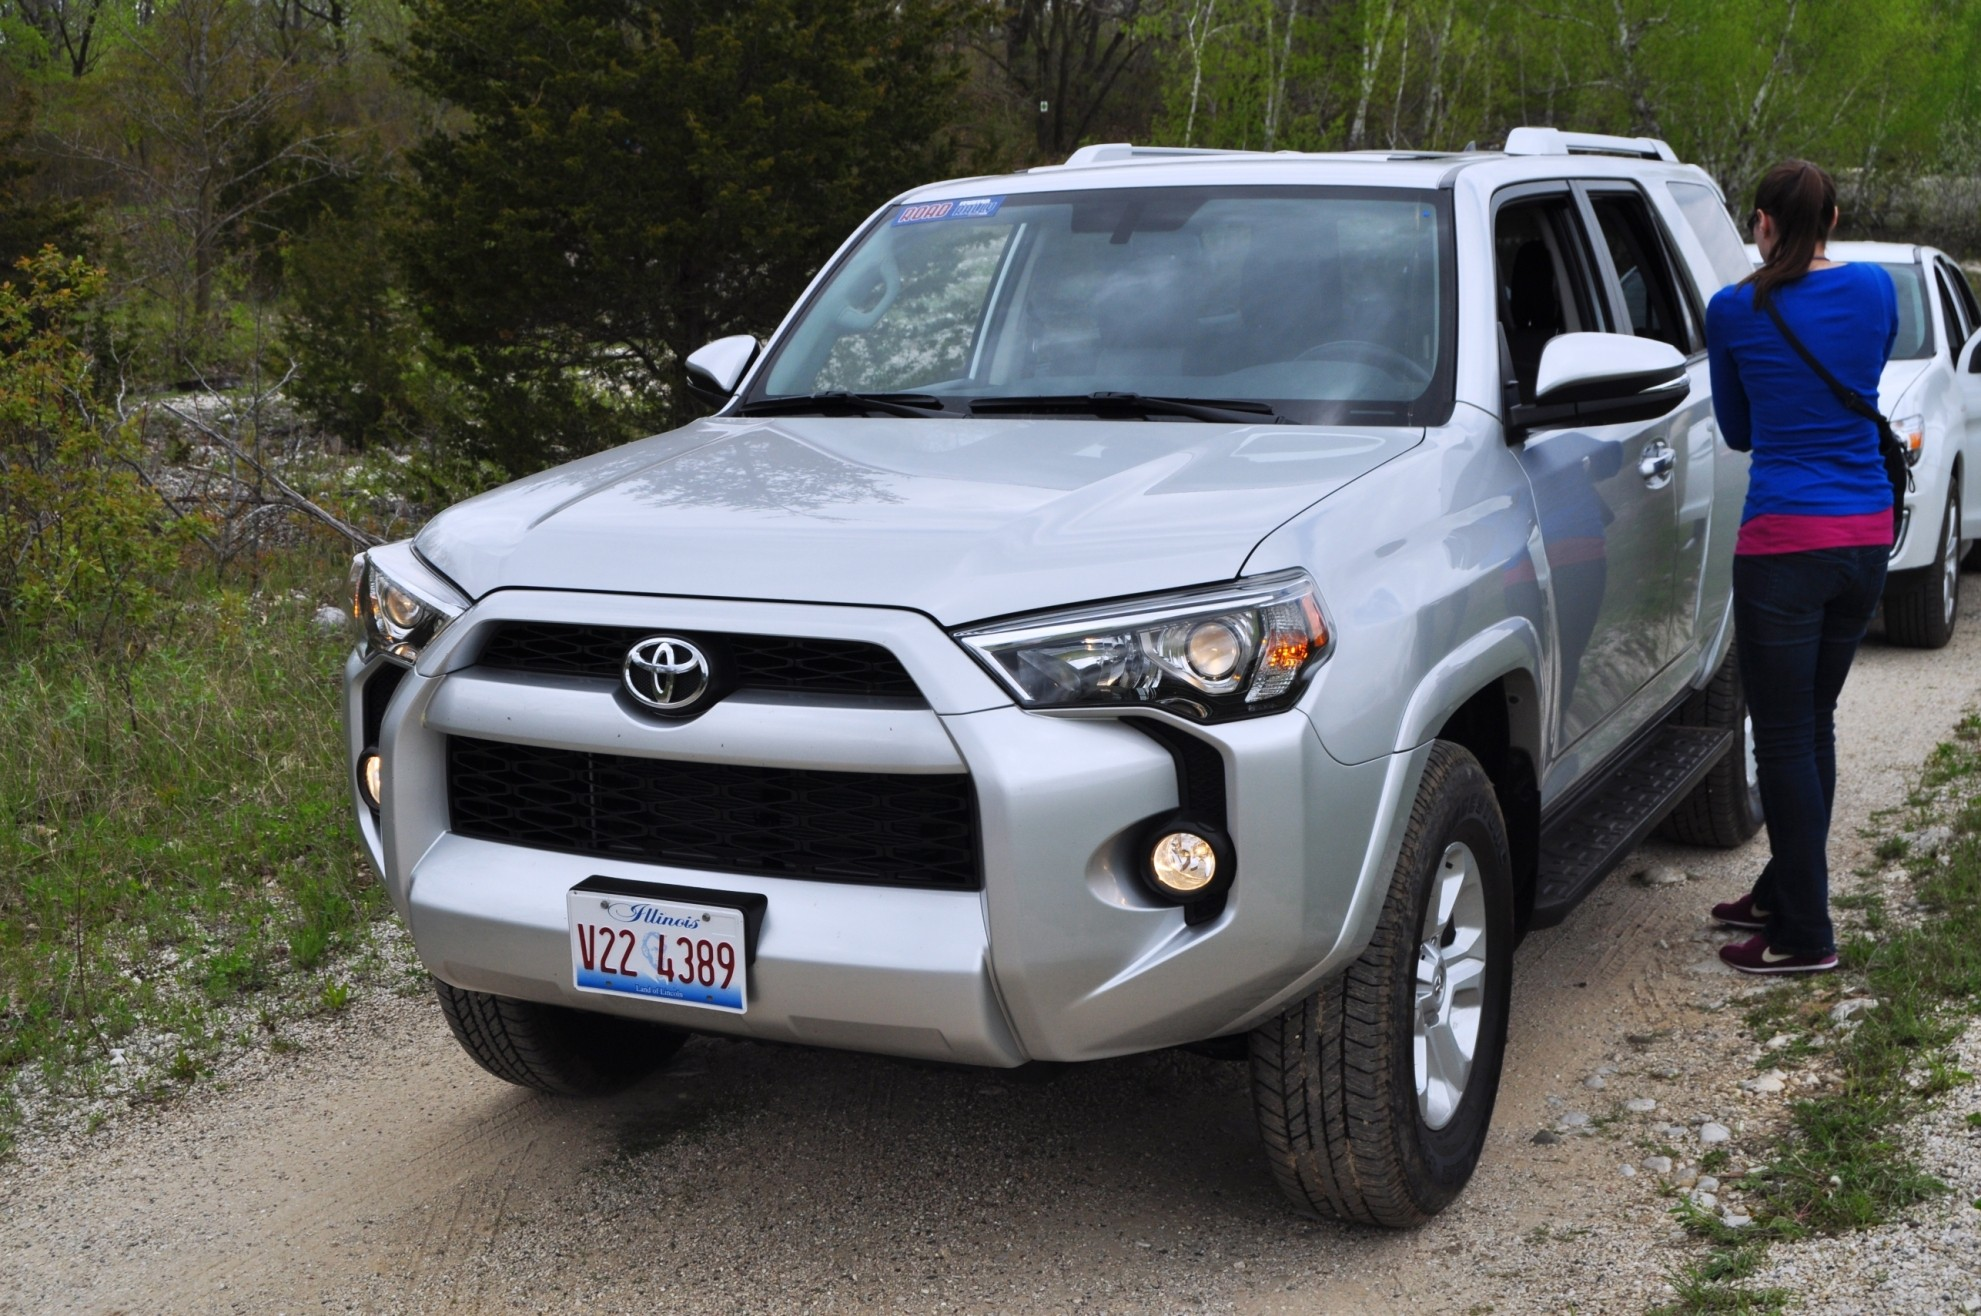 road test review 2014 toyota 4runner limited 2wd is low and sexy. Black Bedroom Furniture Sets. Home Design Ideas